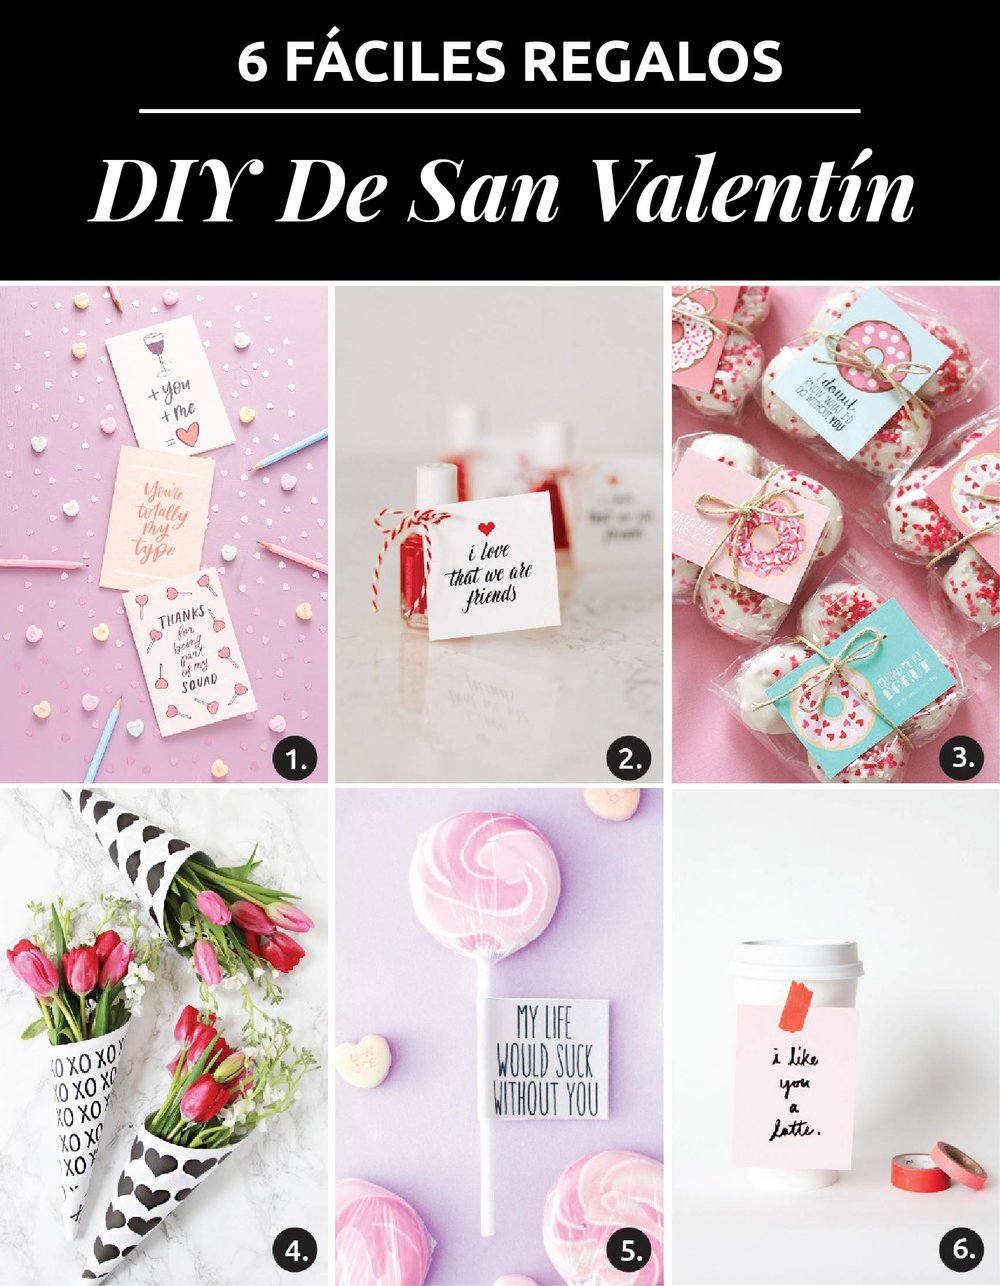 6 Faciles Regalos Diy De San Valentin Descargas Gratuitas The